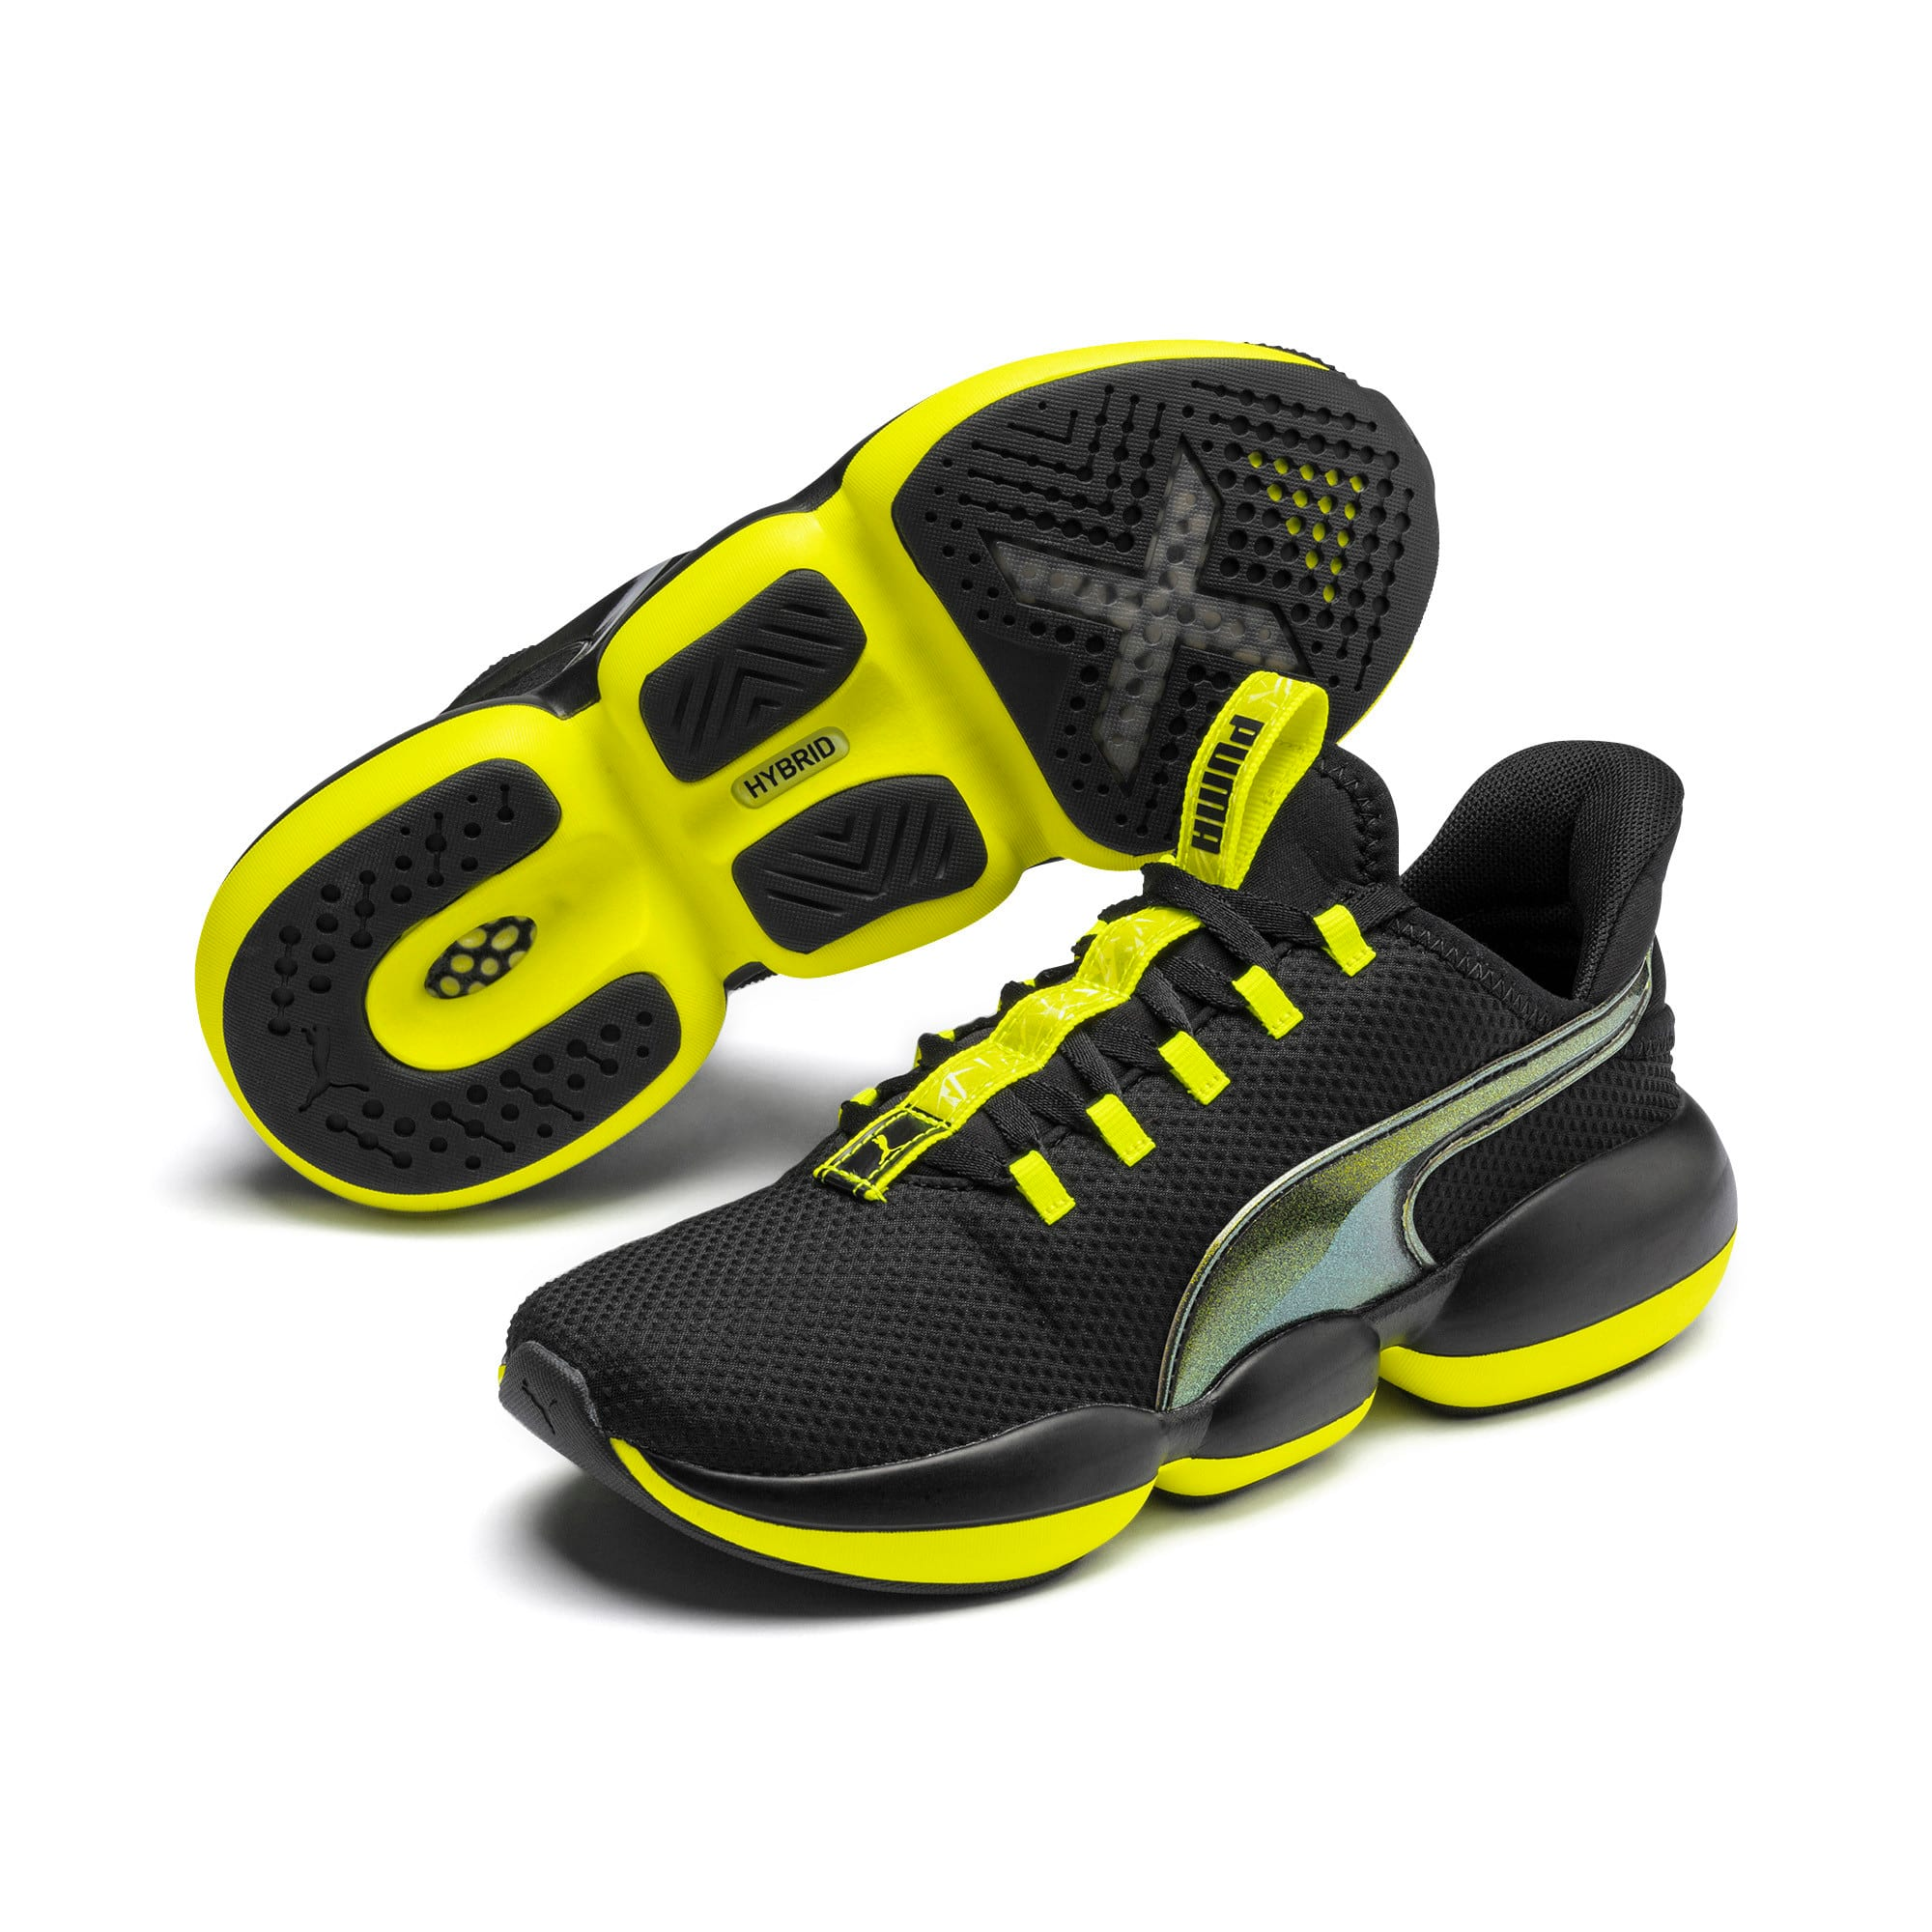 Thumbnail 3 of Mode XT Shift Women's Training Shoes, Puma Black-Yellow Alert, medium